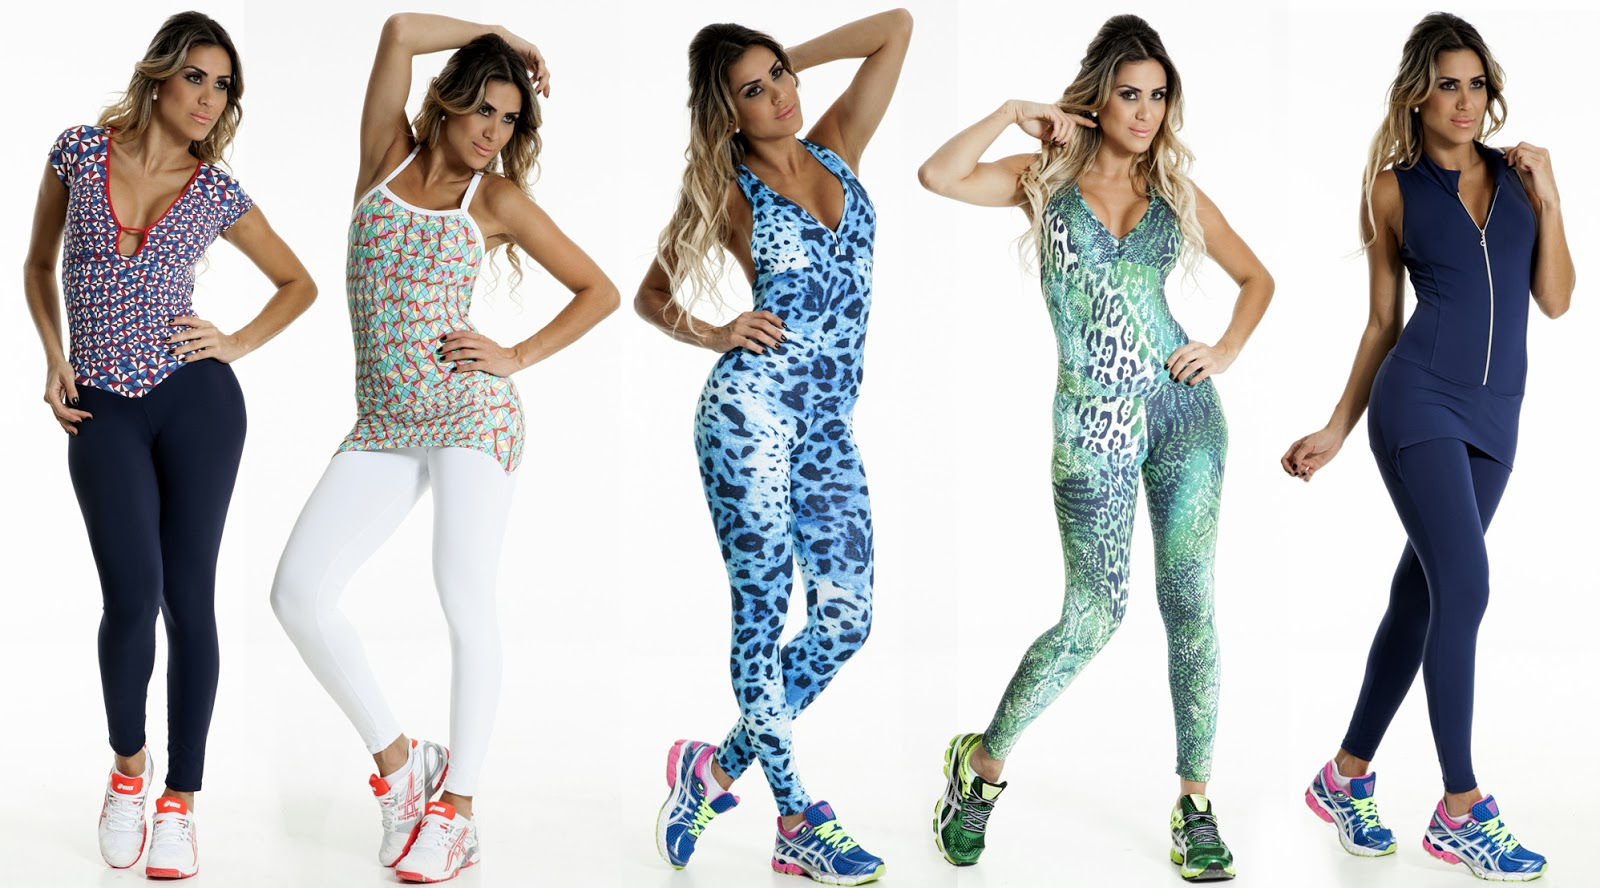 macacoes-canoan-moda-fitness